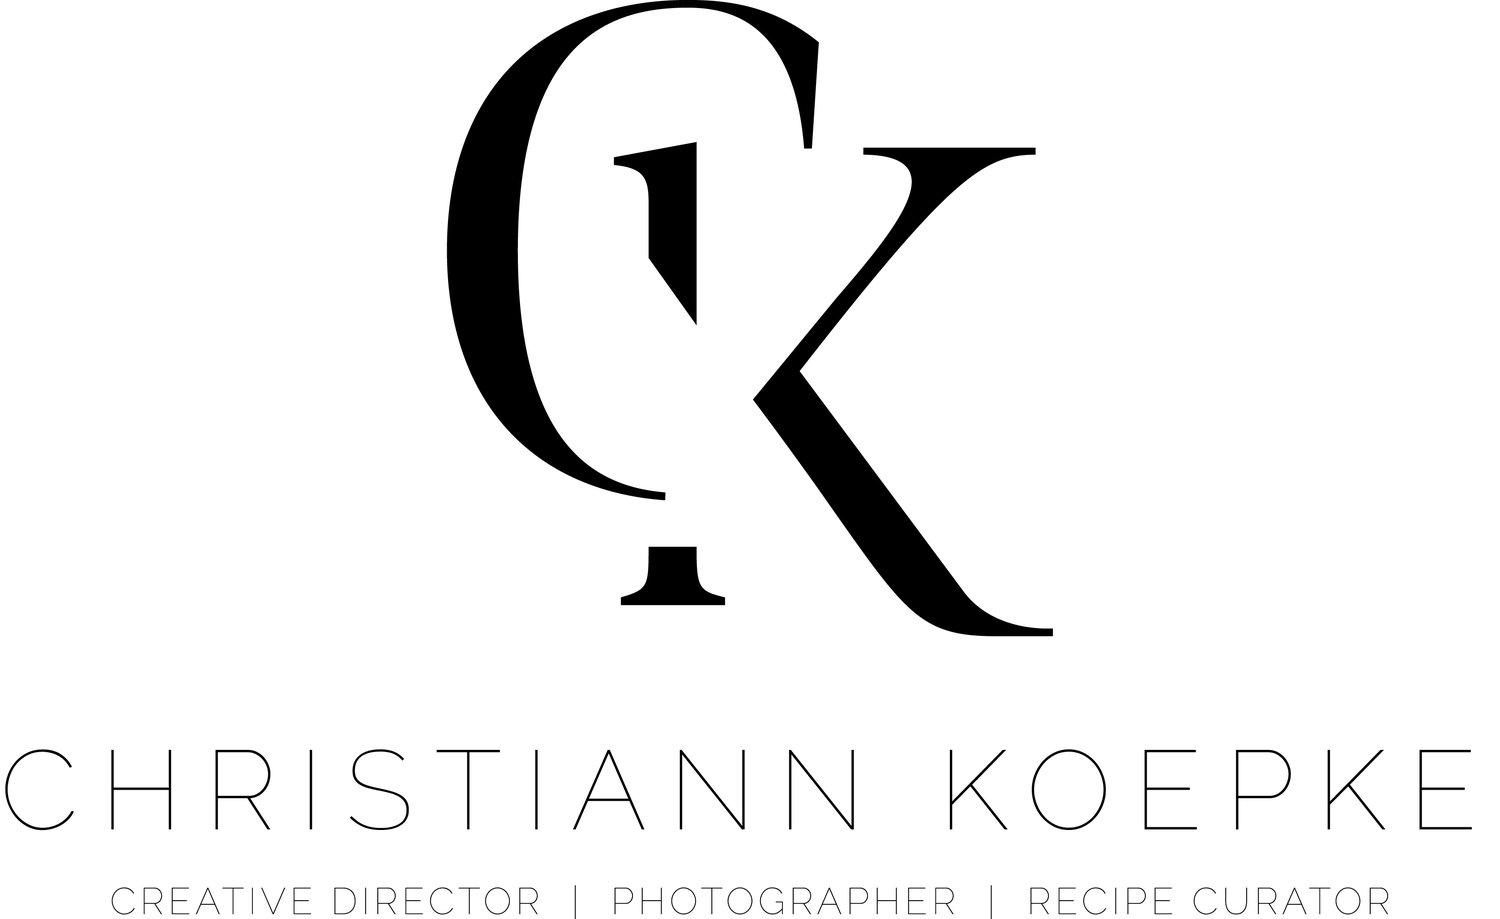 Creative Director | Photographer | Recipe Curator